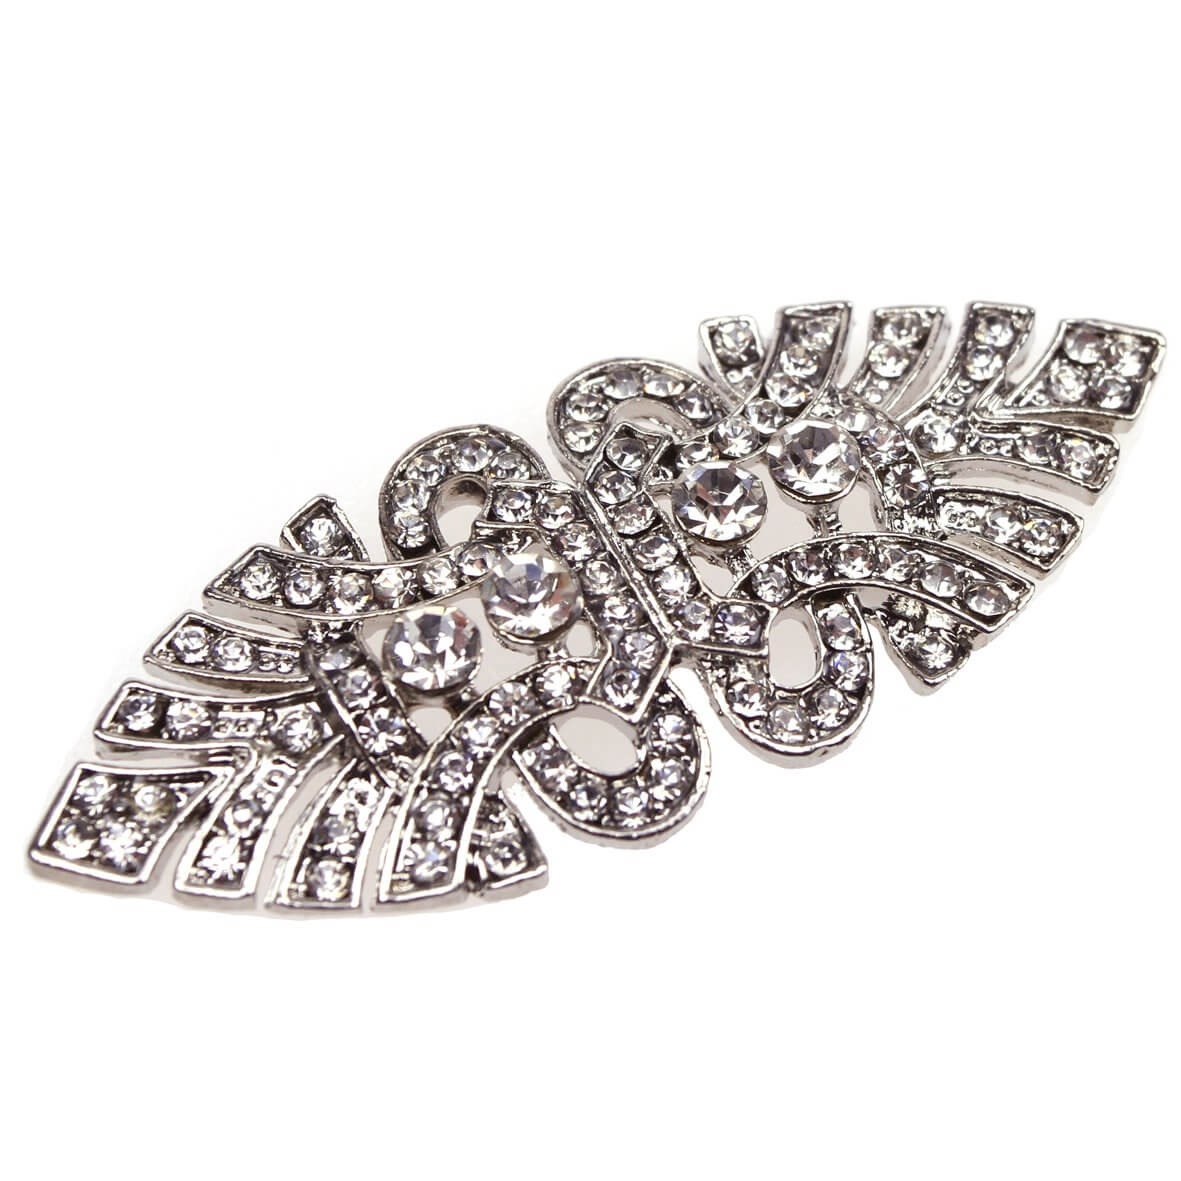 Nouveau - an art deco diamante embellishment